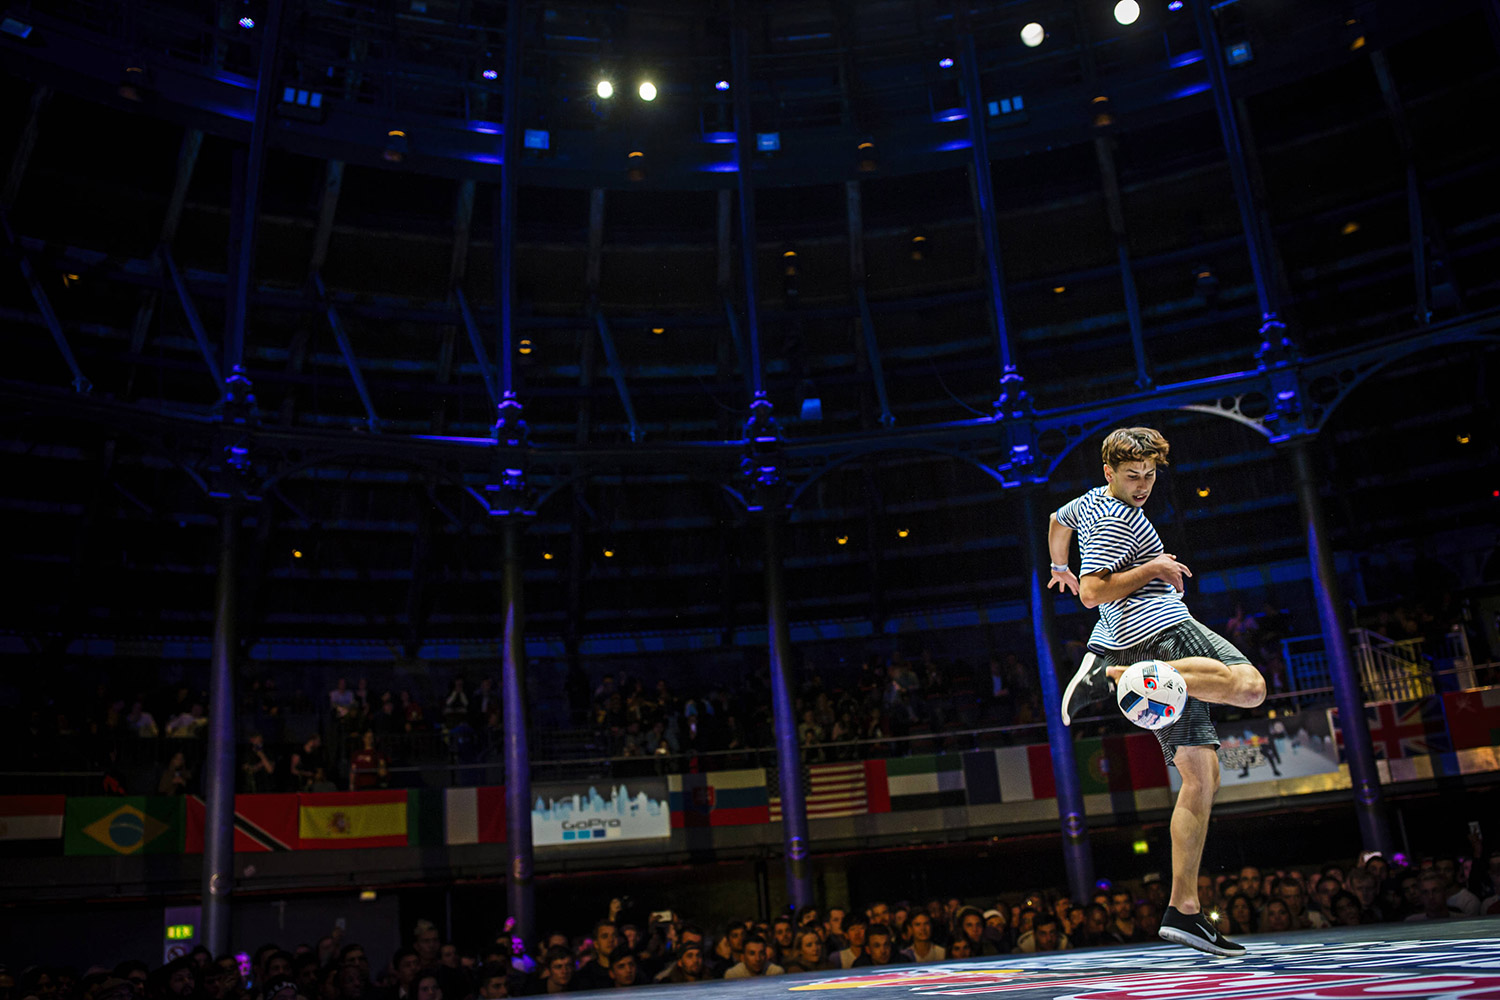 Daniel Dennehy of Ireland competes during the finals of the freestyle football world championship Red Bull Street Style in London, United Kingdom on November 8, 2016 // Samo Vidic/Red Bull Content Pool // AP-1Q44MTHK51W11 // Usage for editorial use only // Please go to www.redbullcontentpool.com for further information. //